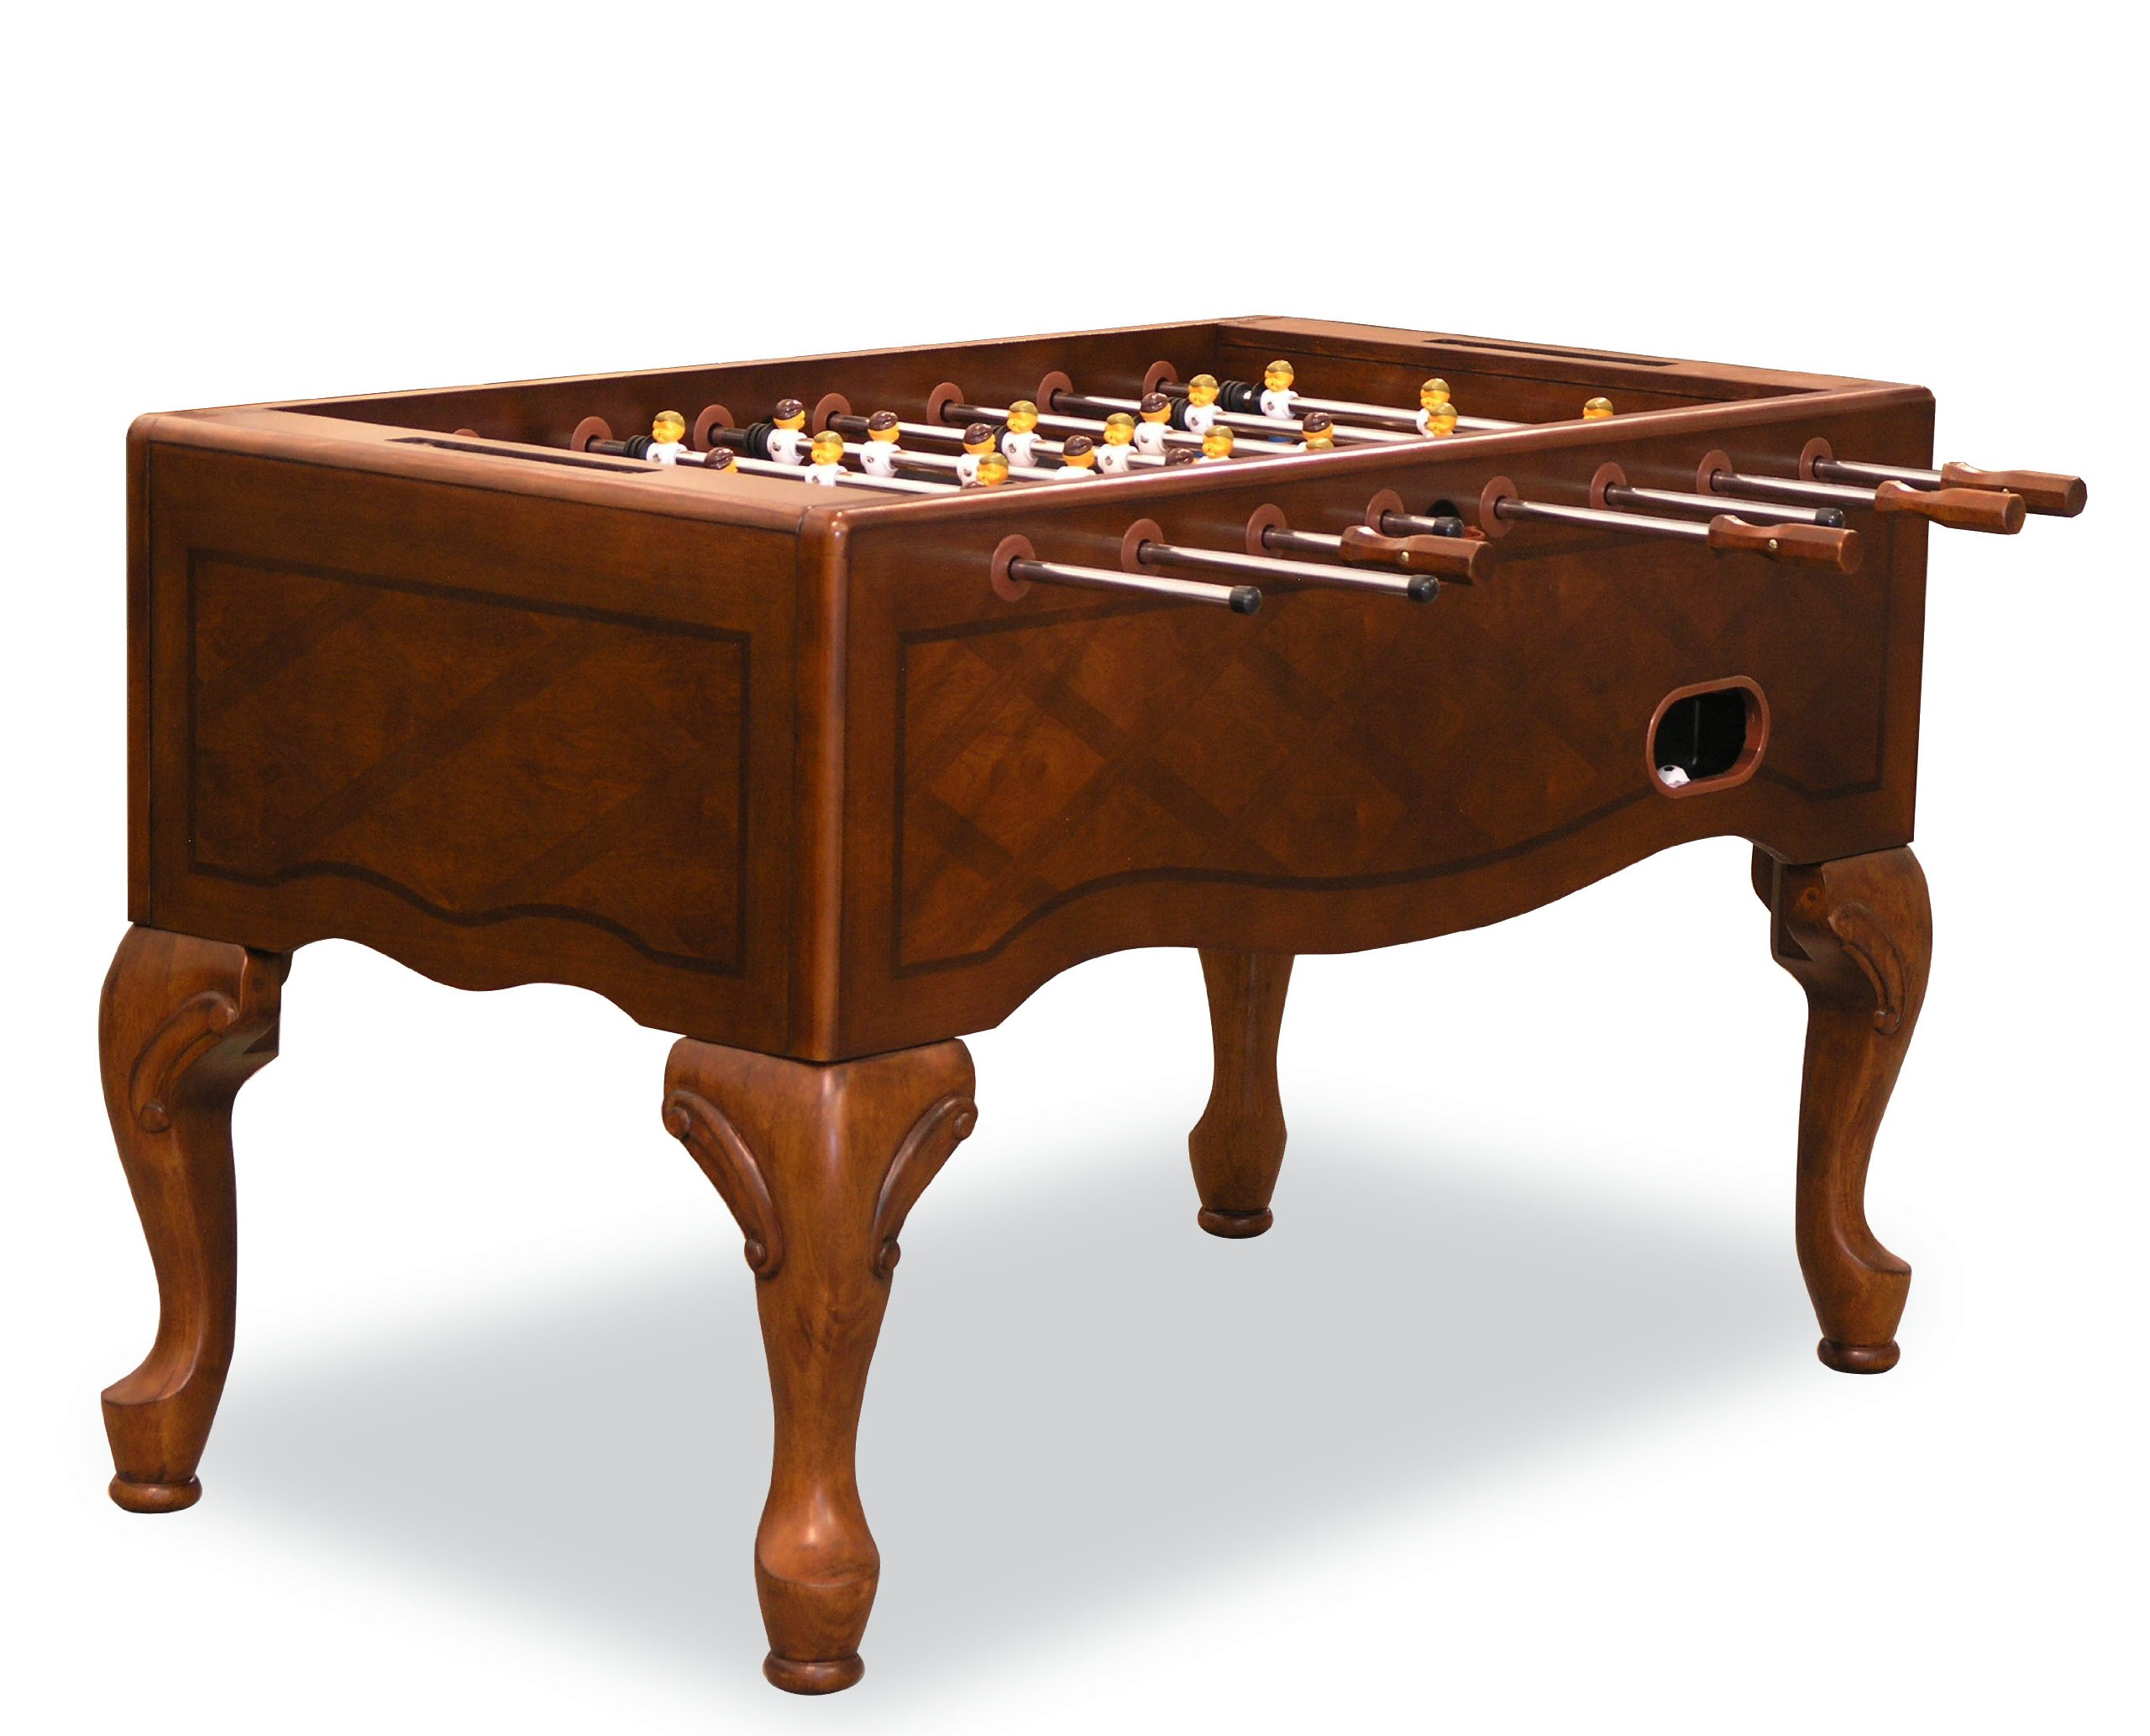 Traditional Style Foosball Table with Queen Ann Legs (Chestnut)